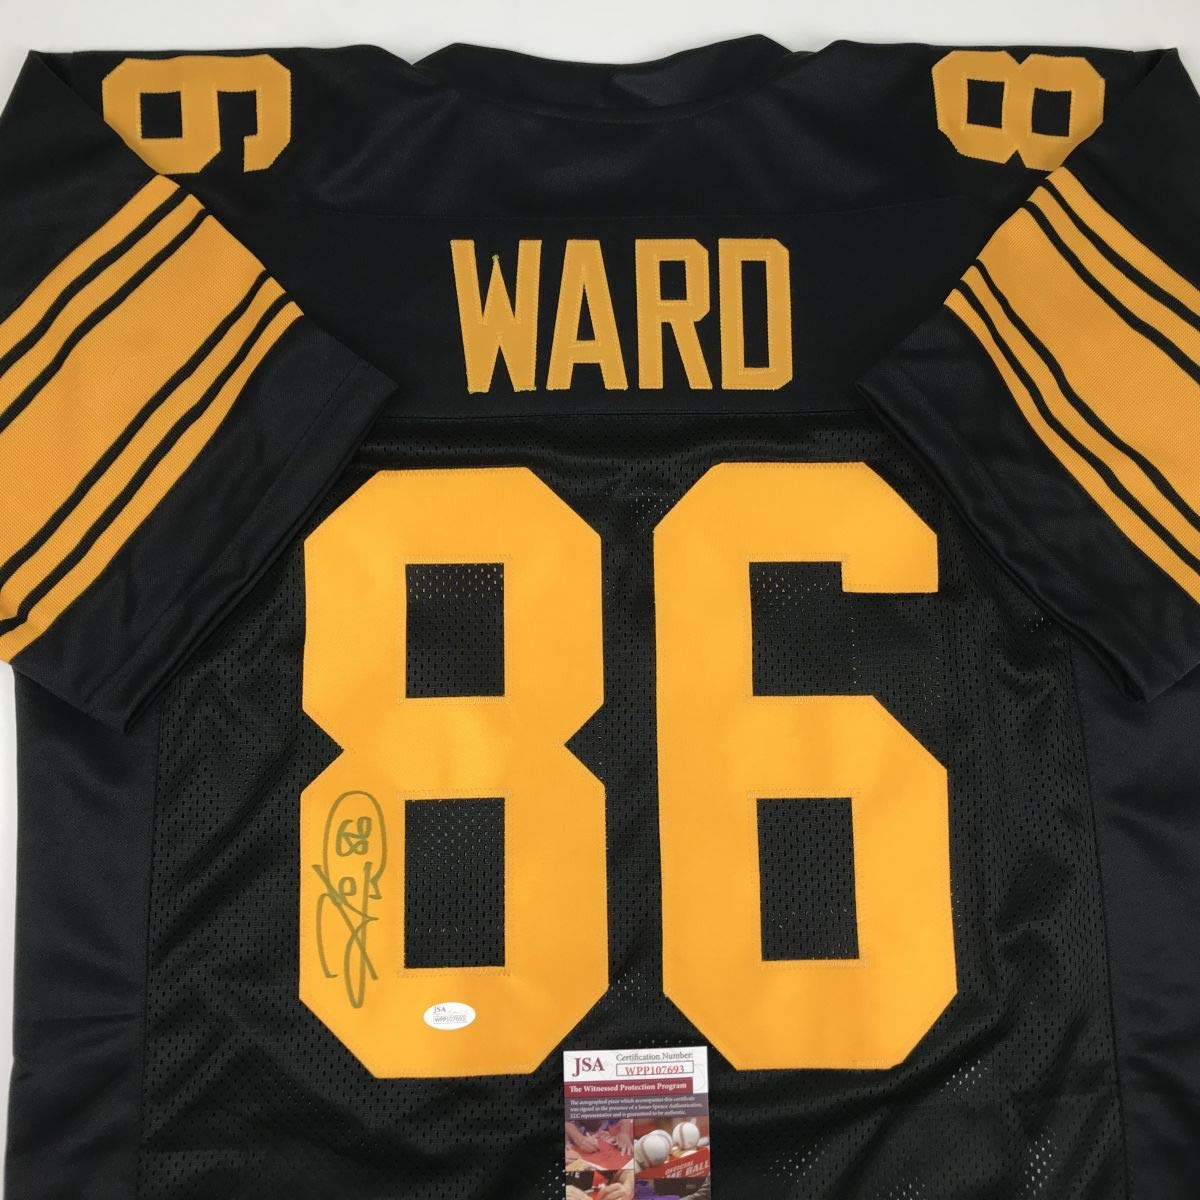 5850ee488 Autographed signed hines ward pittsburgh color rush football jersey jsa coa  at amazons sports collectibles store